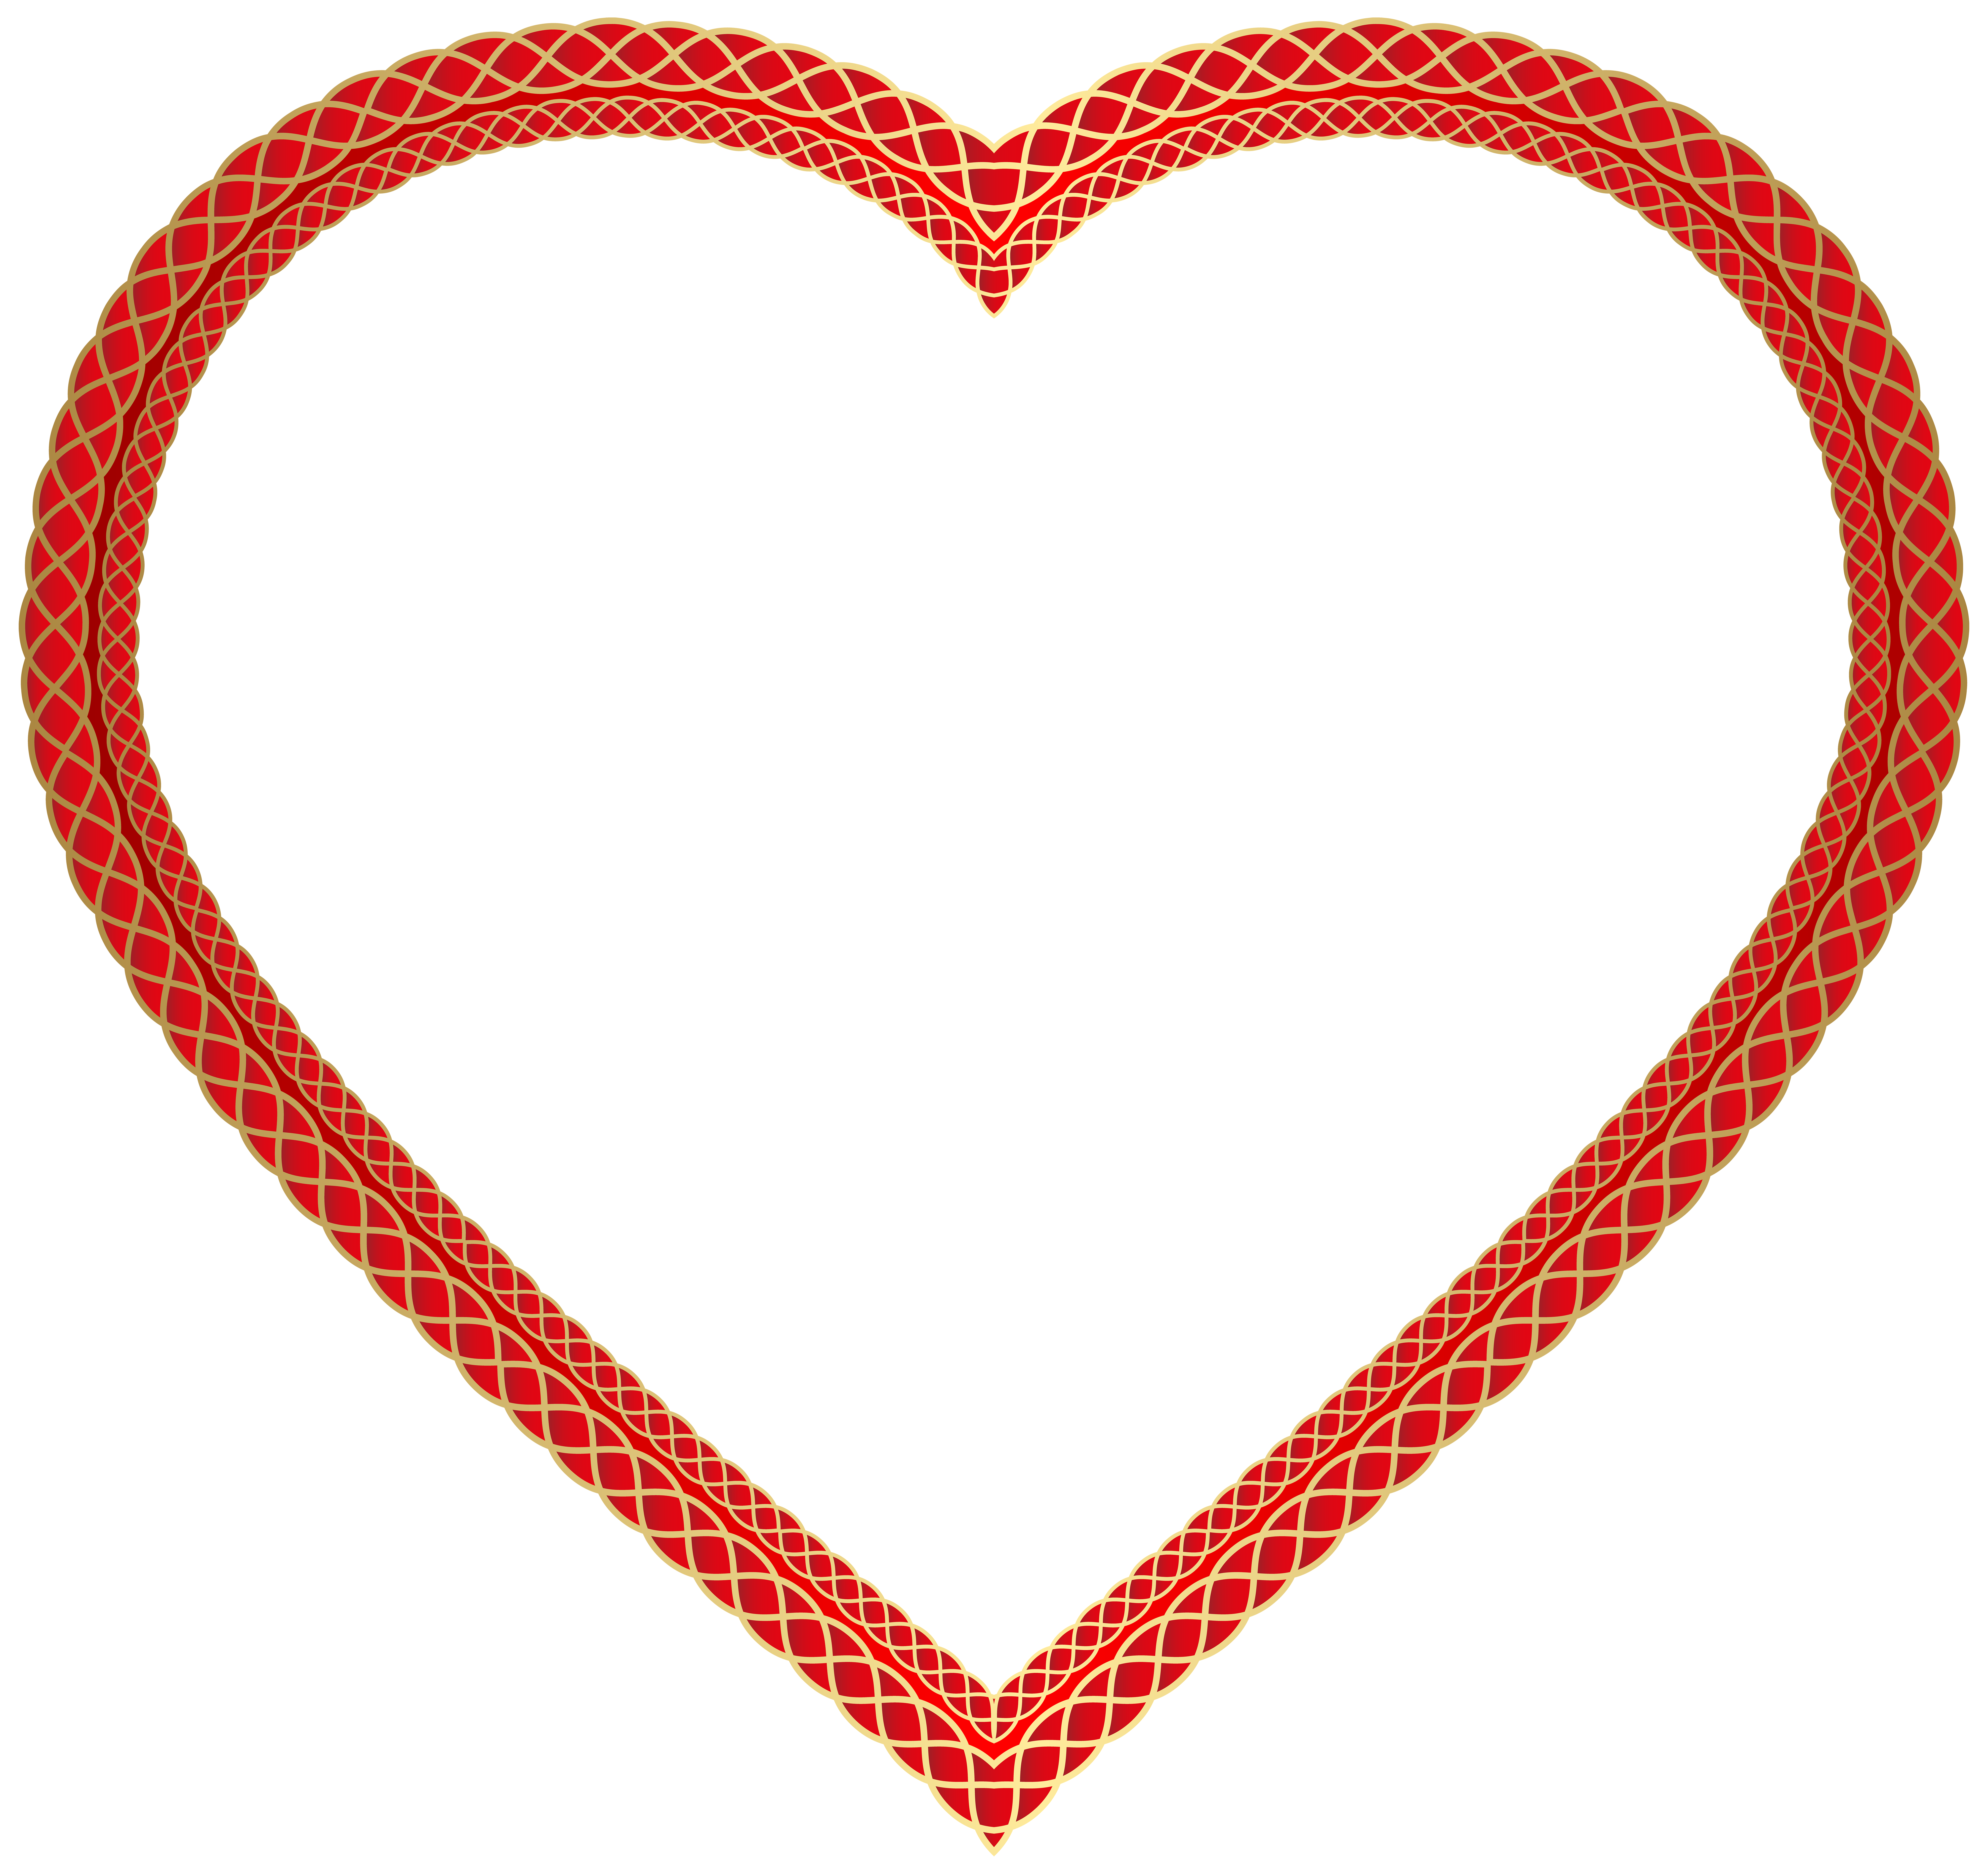 Curly heart outline clipart picture black and white Heart Clipart For Kids at GetDrawings.com | Free for personal use ... picture black and white